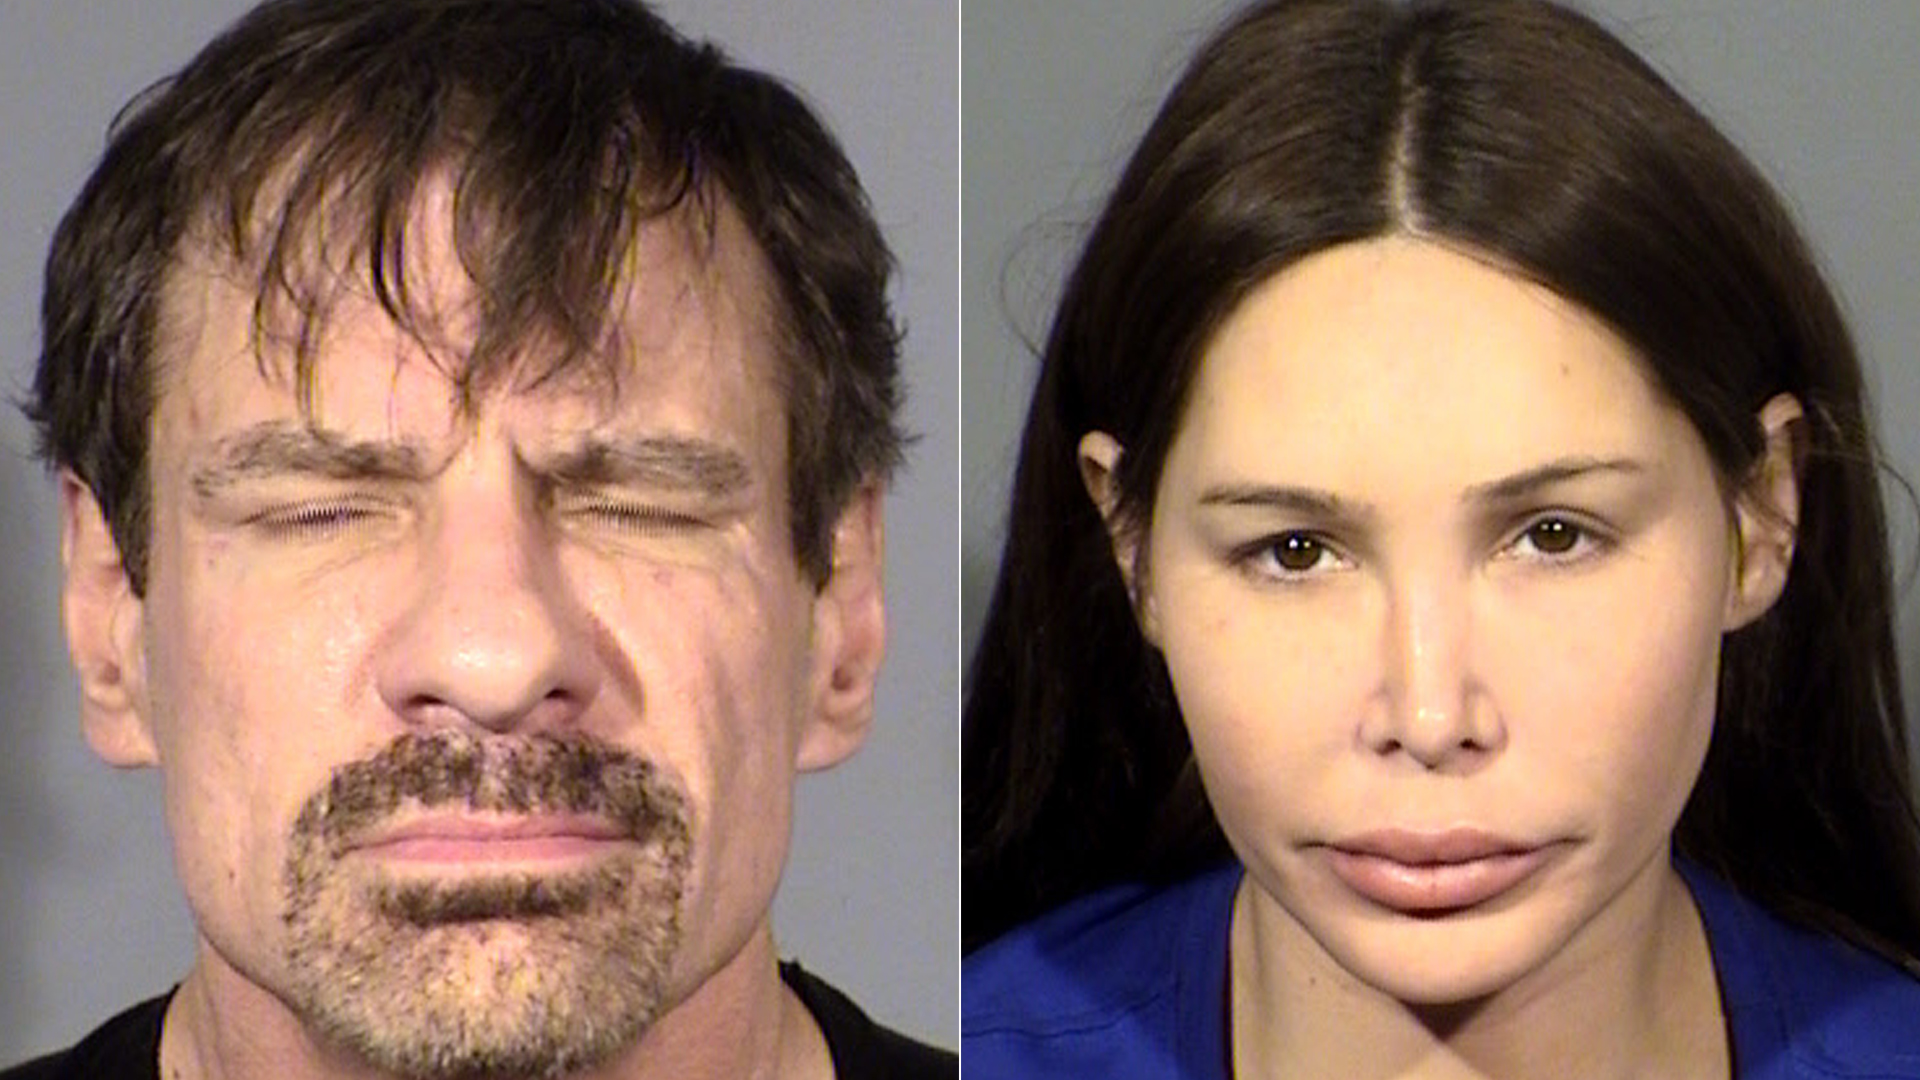 Henry Nicholas and Ashley Fargo are seen in photos provided by the Las Vegas Metropolitan Police Department.